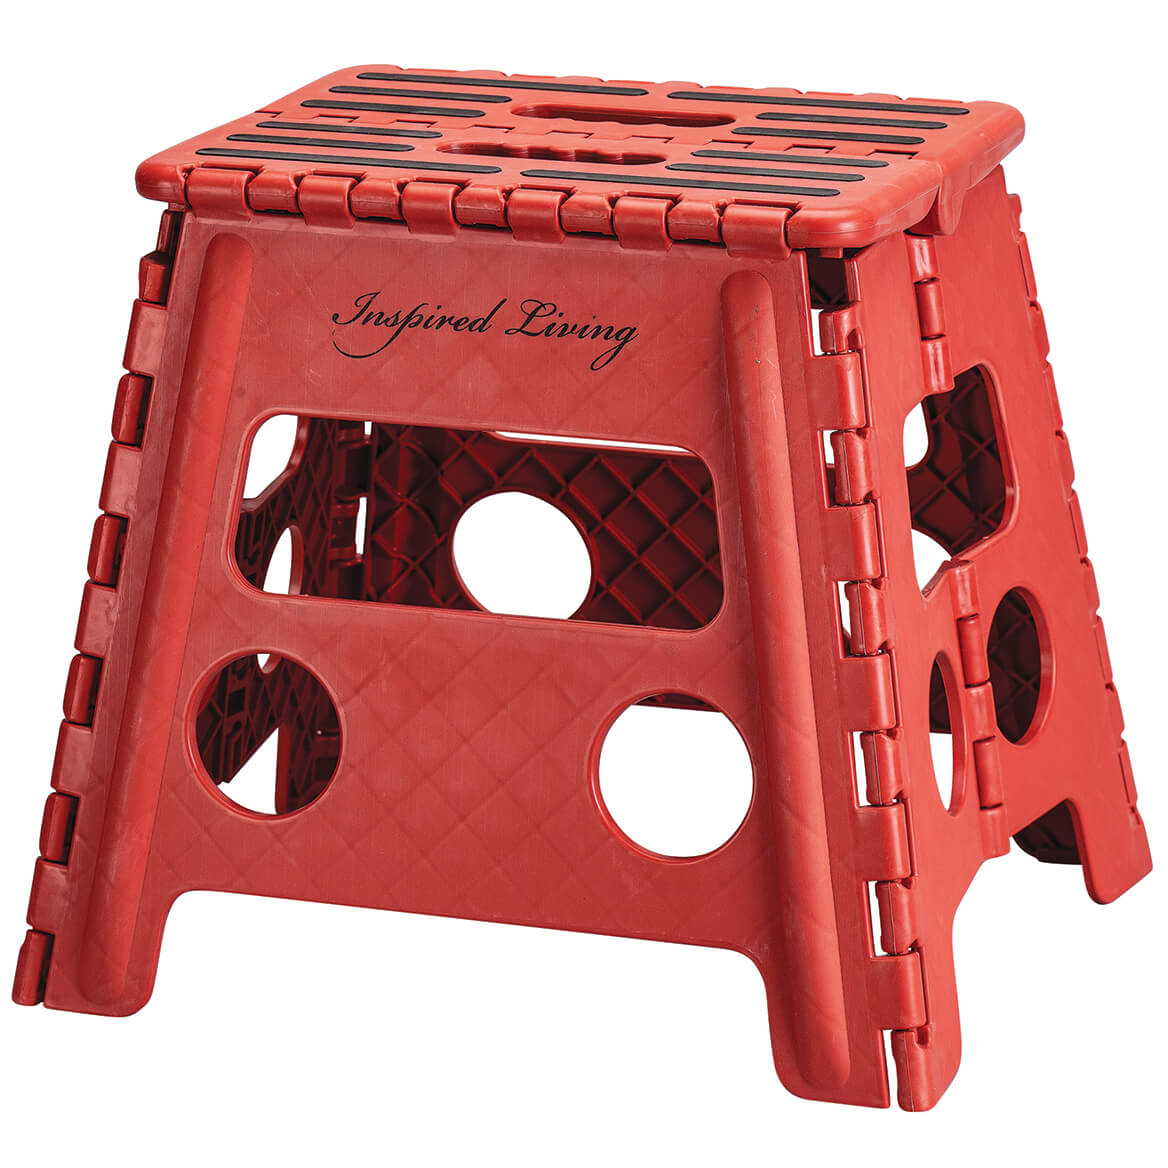 Fabulous Inspired Living Folding Step Stool Heavy Duty 9 High In Machost Co Dining Chair Design Ideas Machostcouk